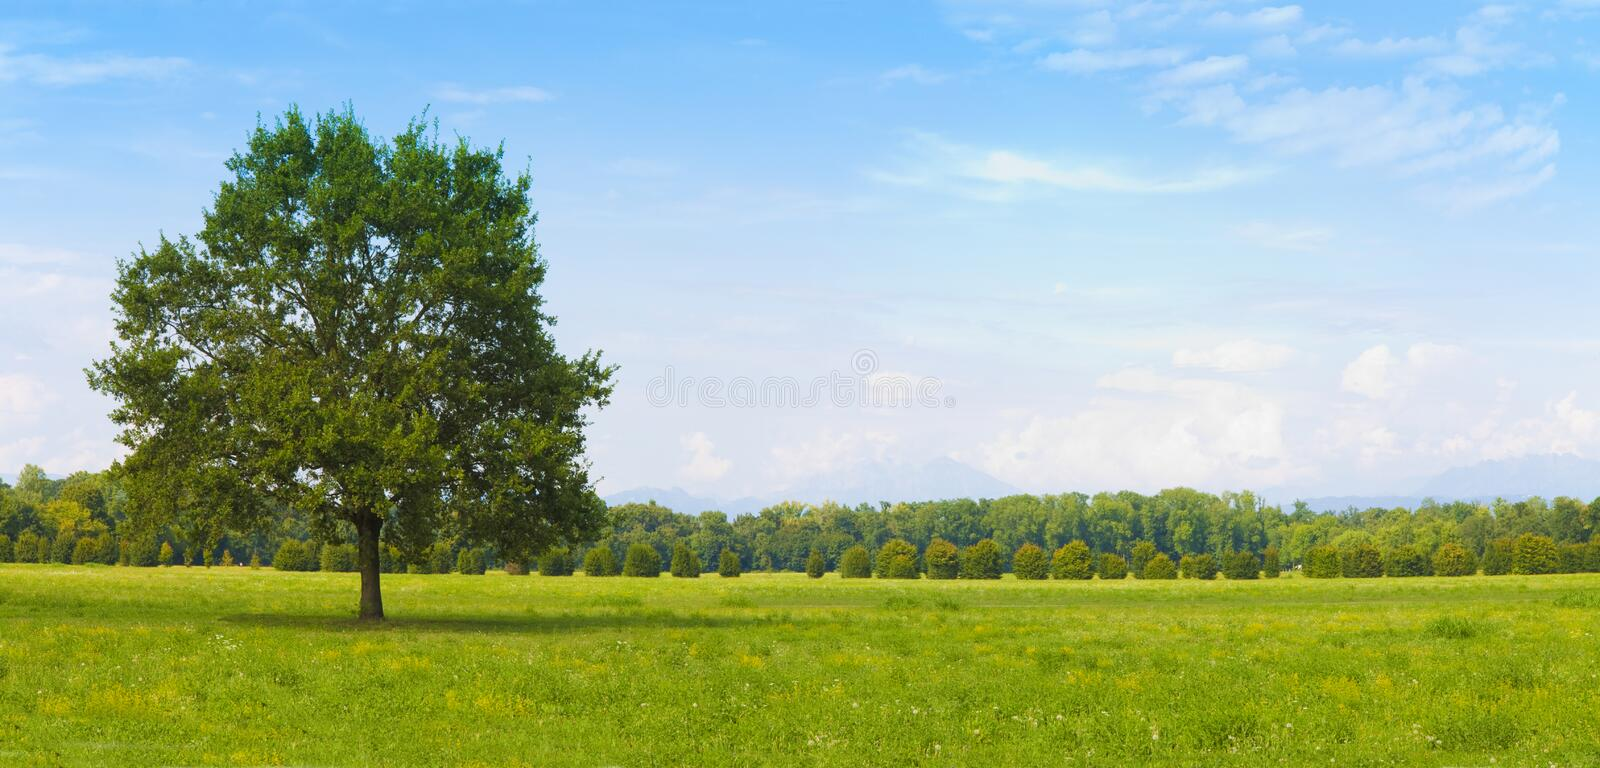 Isolated tree in a green meadow with clear sky - Image with copy space stock images